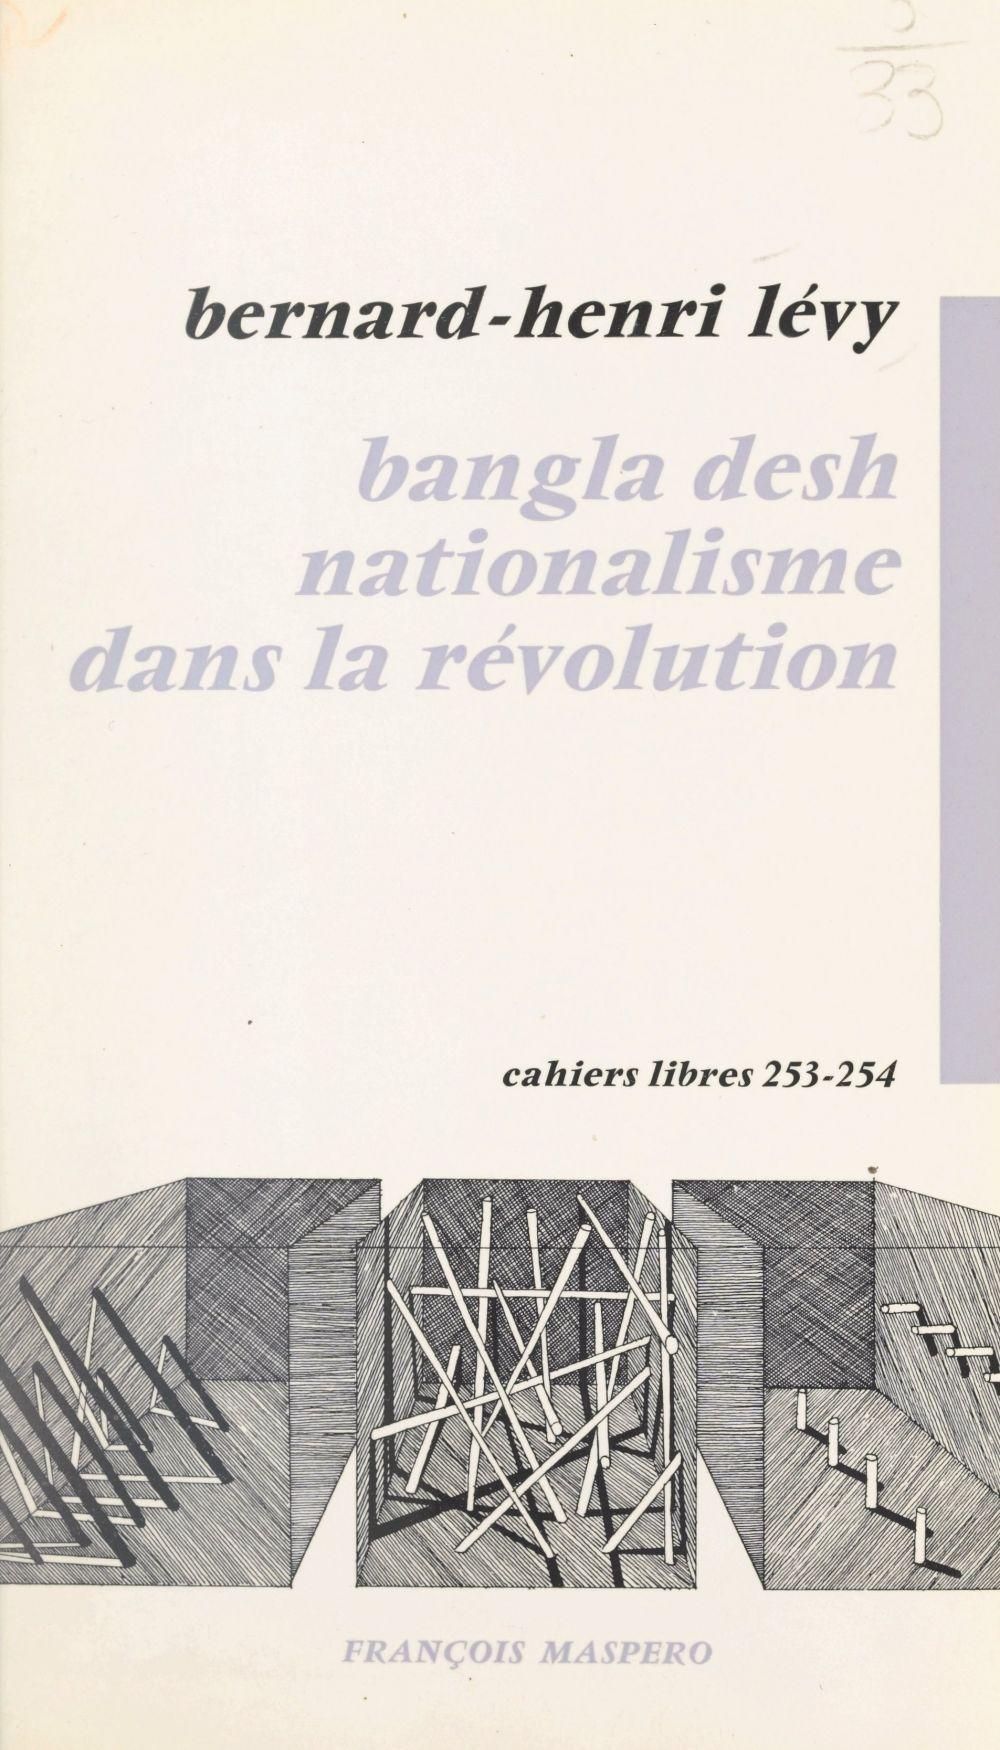 Bangla desh nationalisme dans la révolution